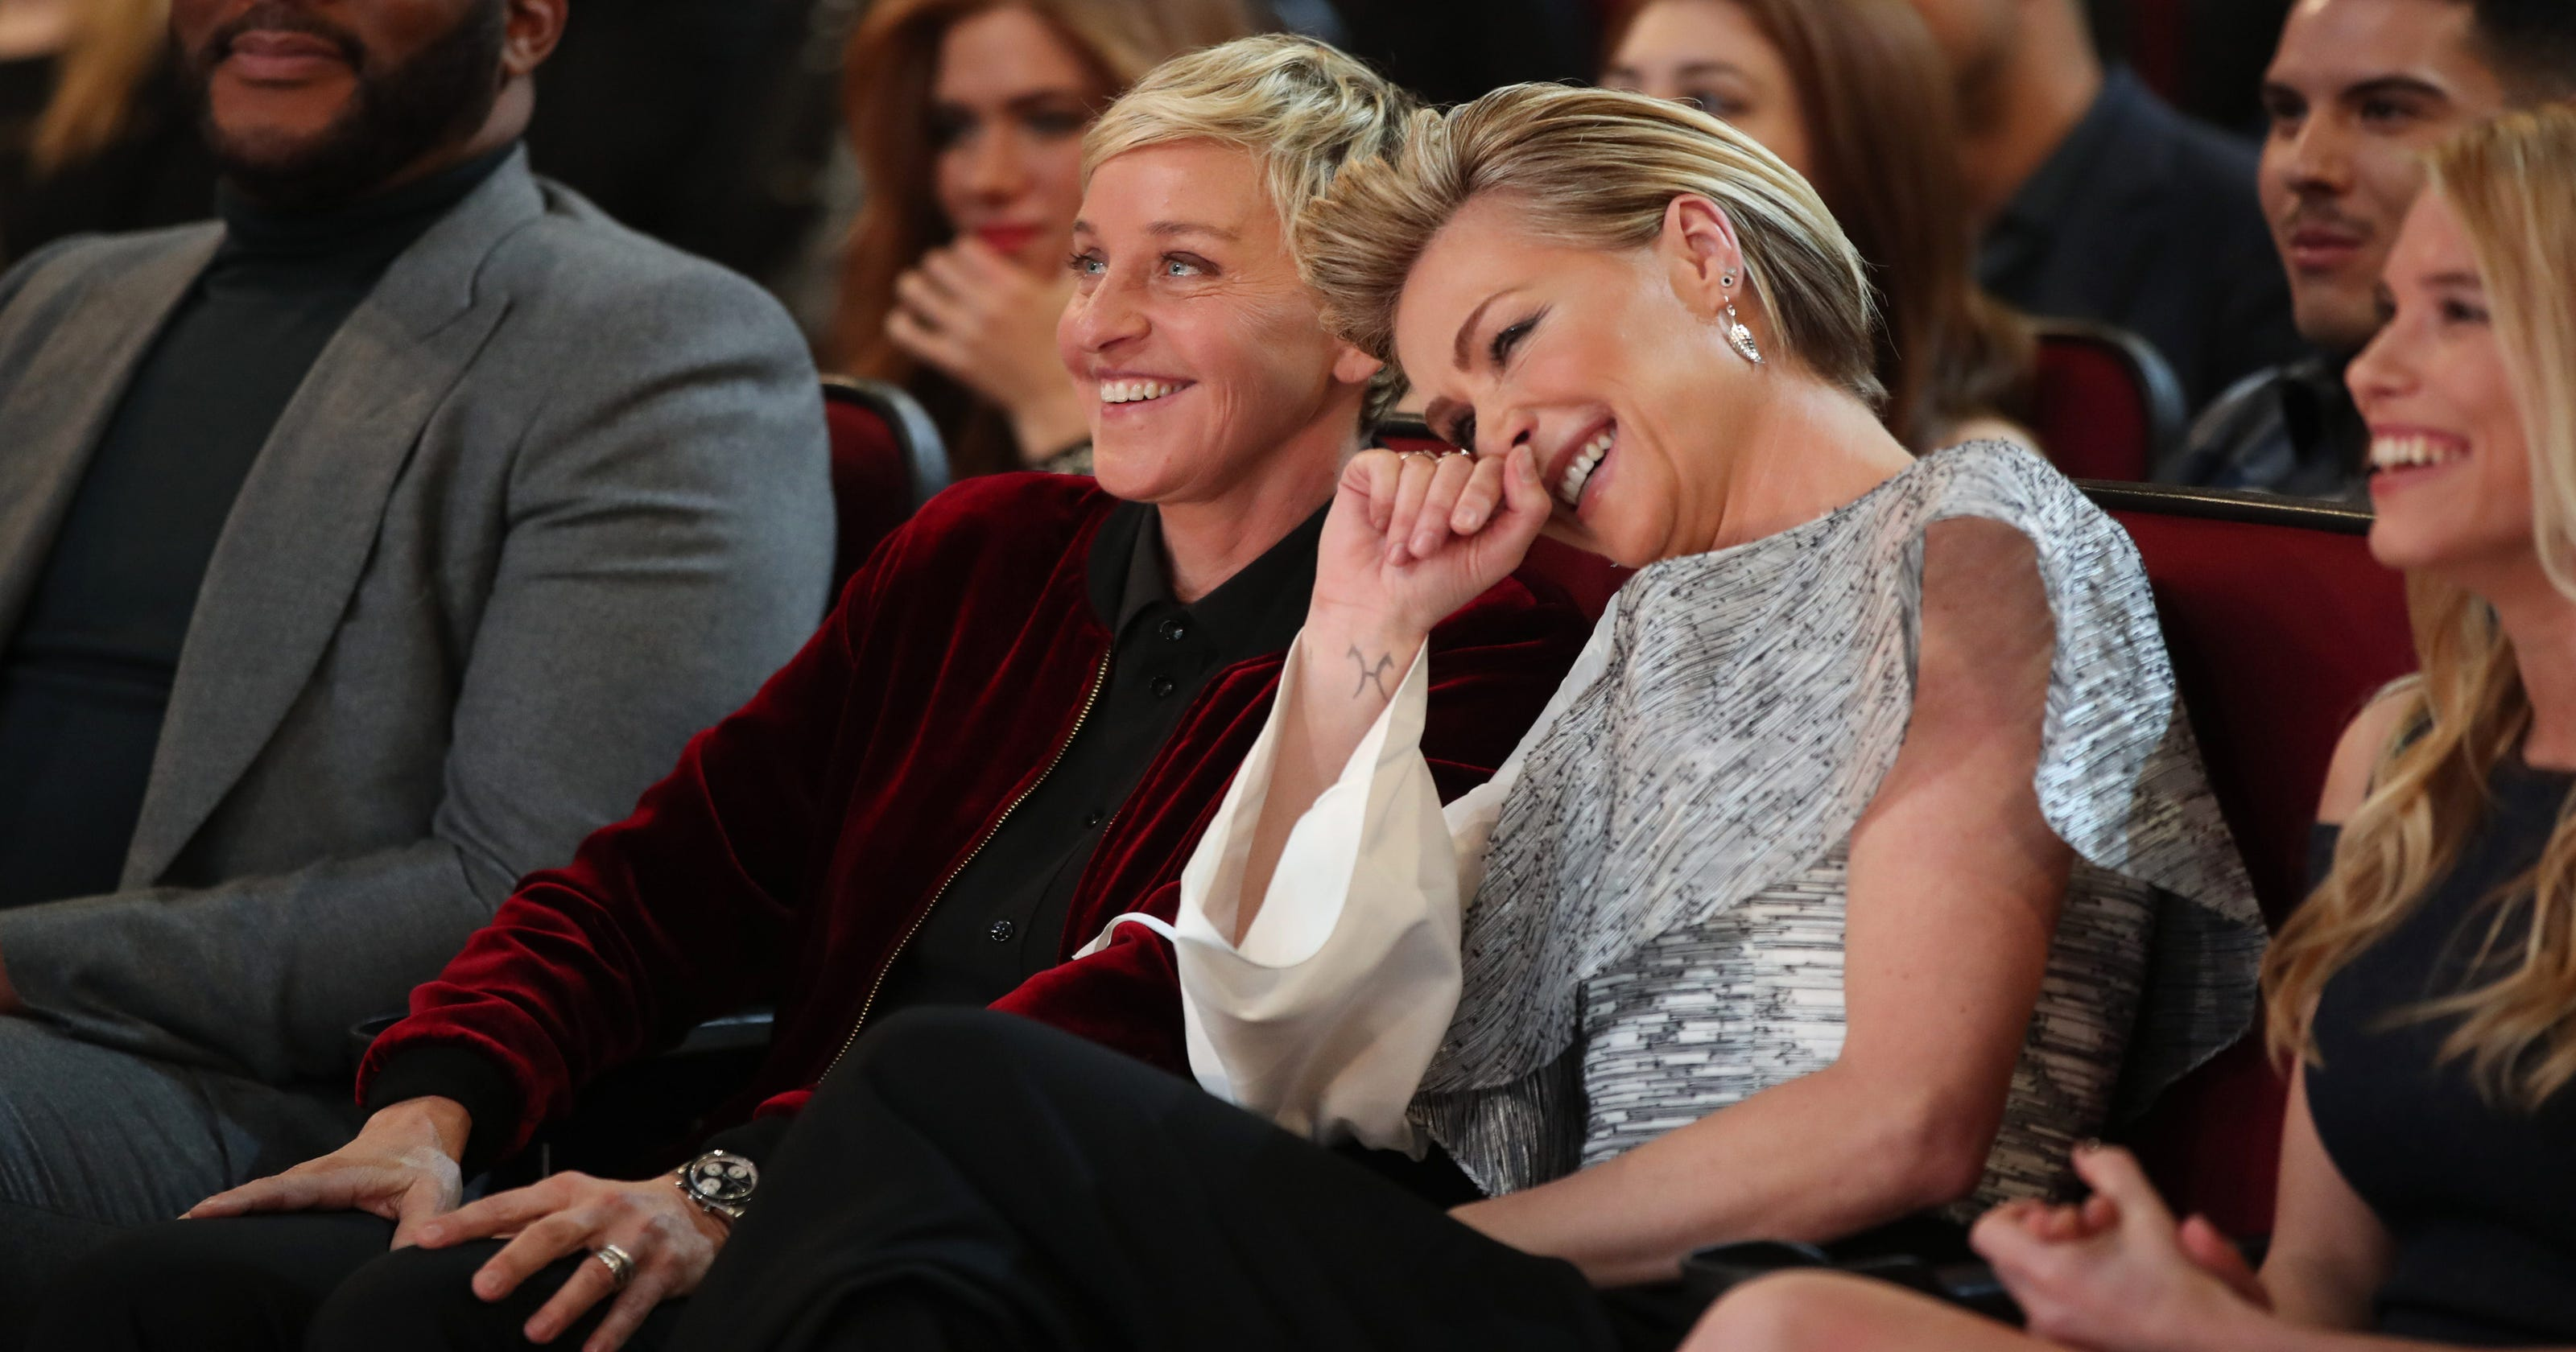 Sitcom That Dare Not Speak Its Real >> 20 Year Flashback Ellen Degeneres Came Out And Paved The Way For